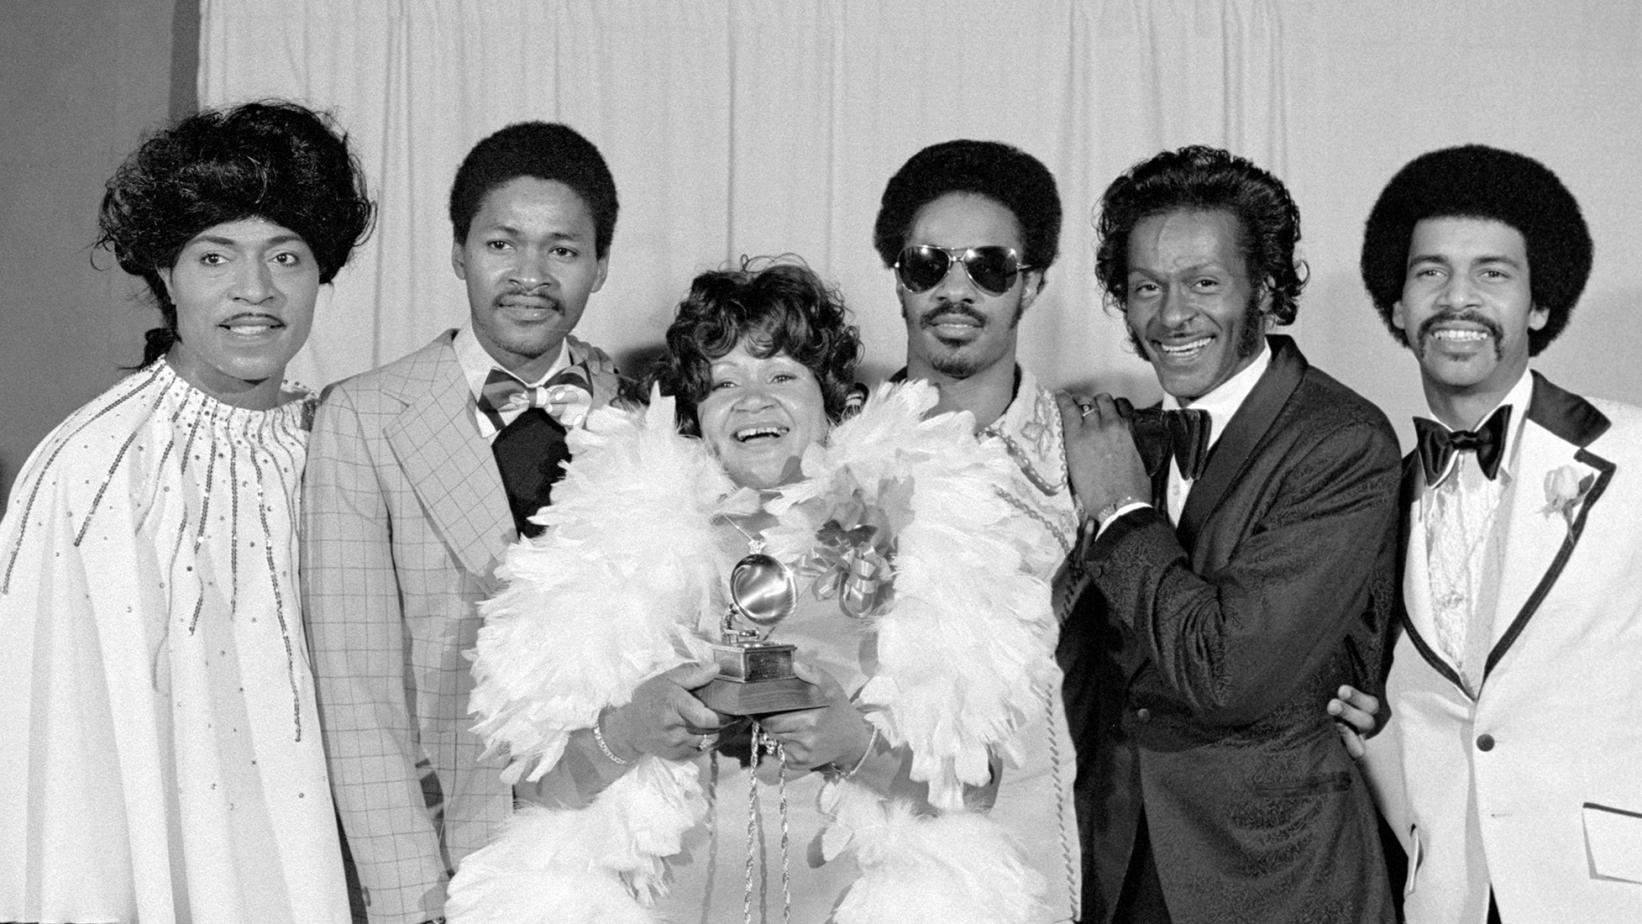 Stevie Wonder, Lula Mae Hardaway, Chuck Berry, Little Richard at the 1974 GRAMMYs